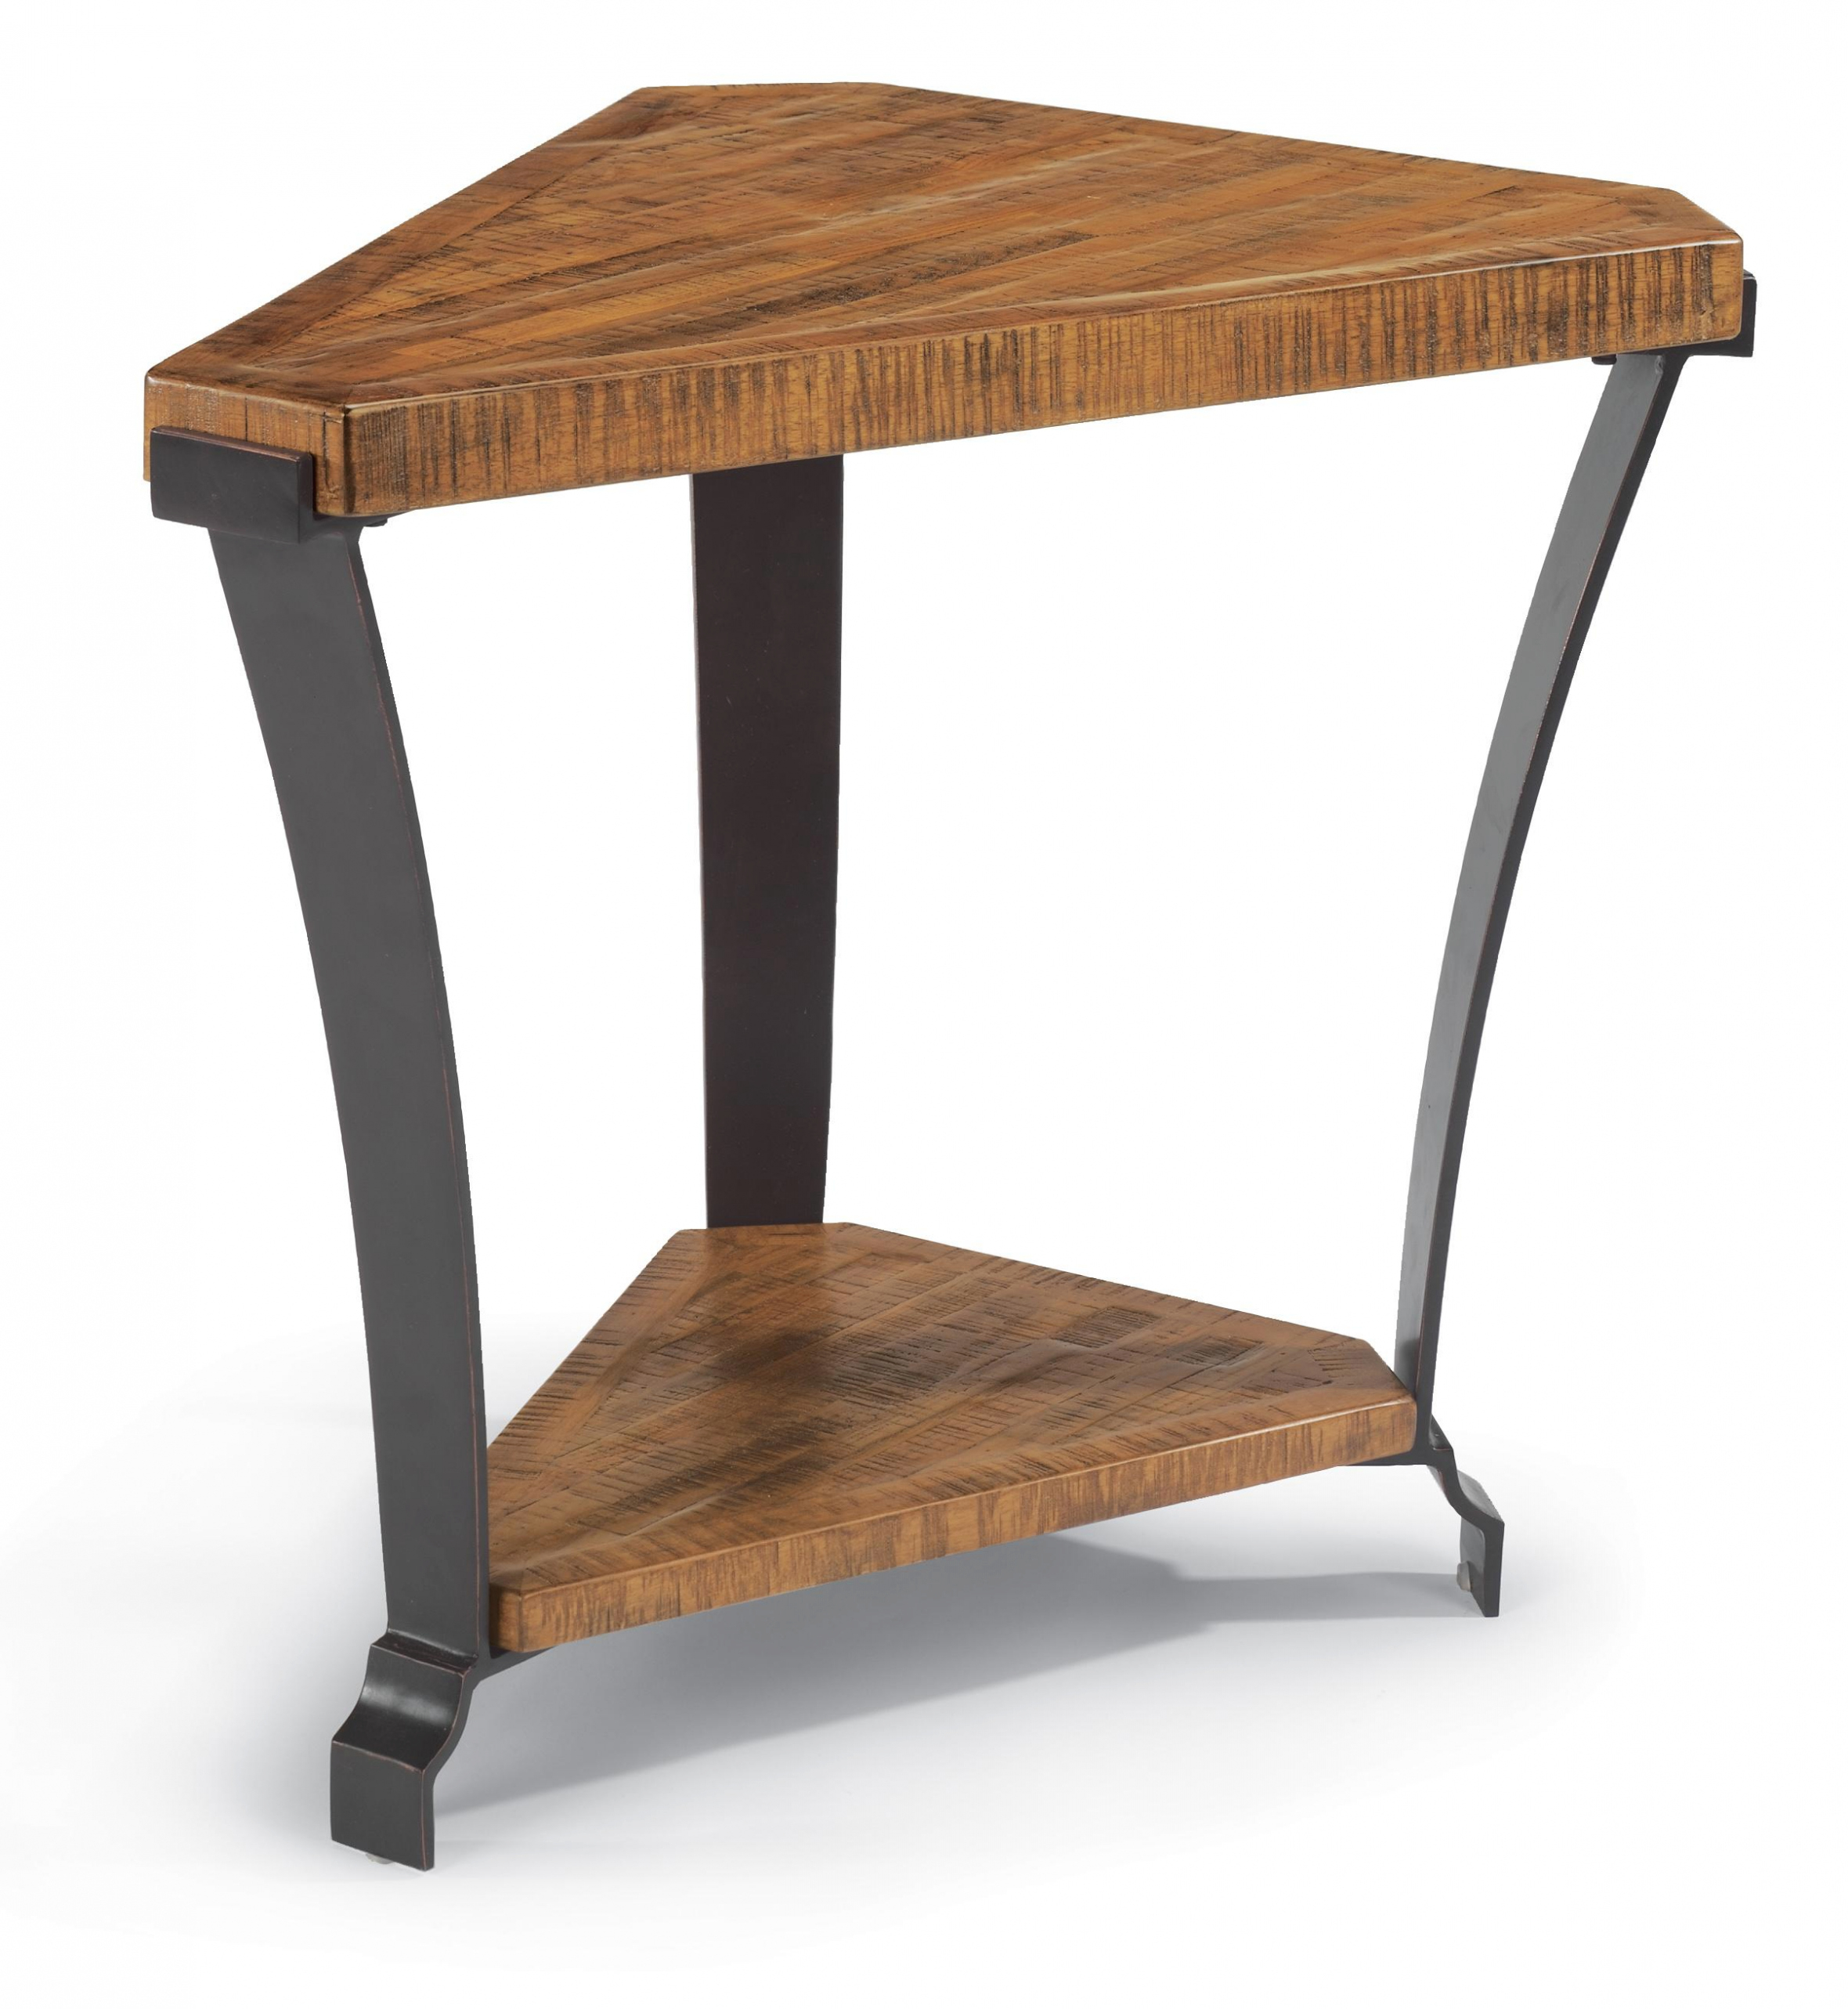 furniture corner accent table the fantastic best unique end tables with awesome your home decor drawer battery powered touch lamp bedroom mirrors reclaimed wood round side metal